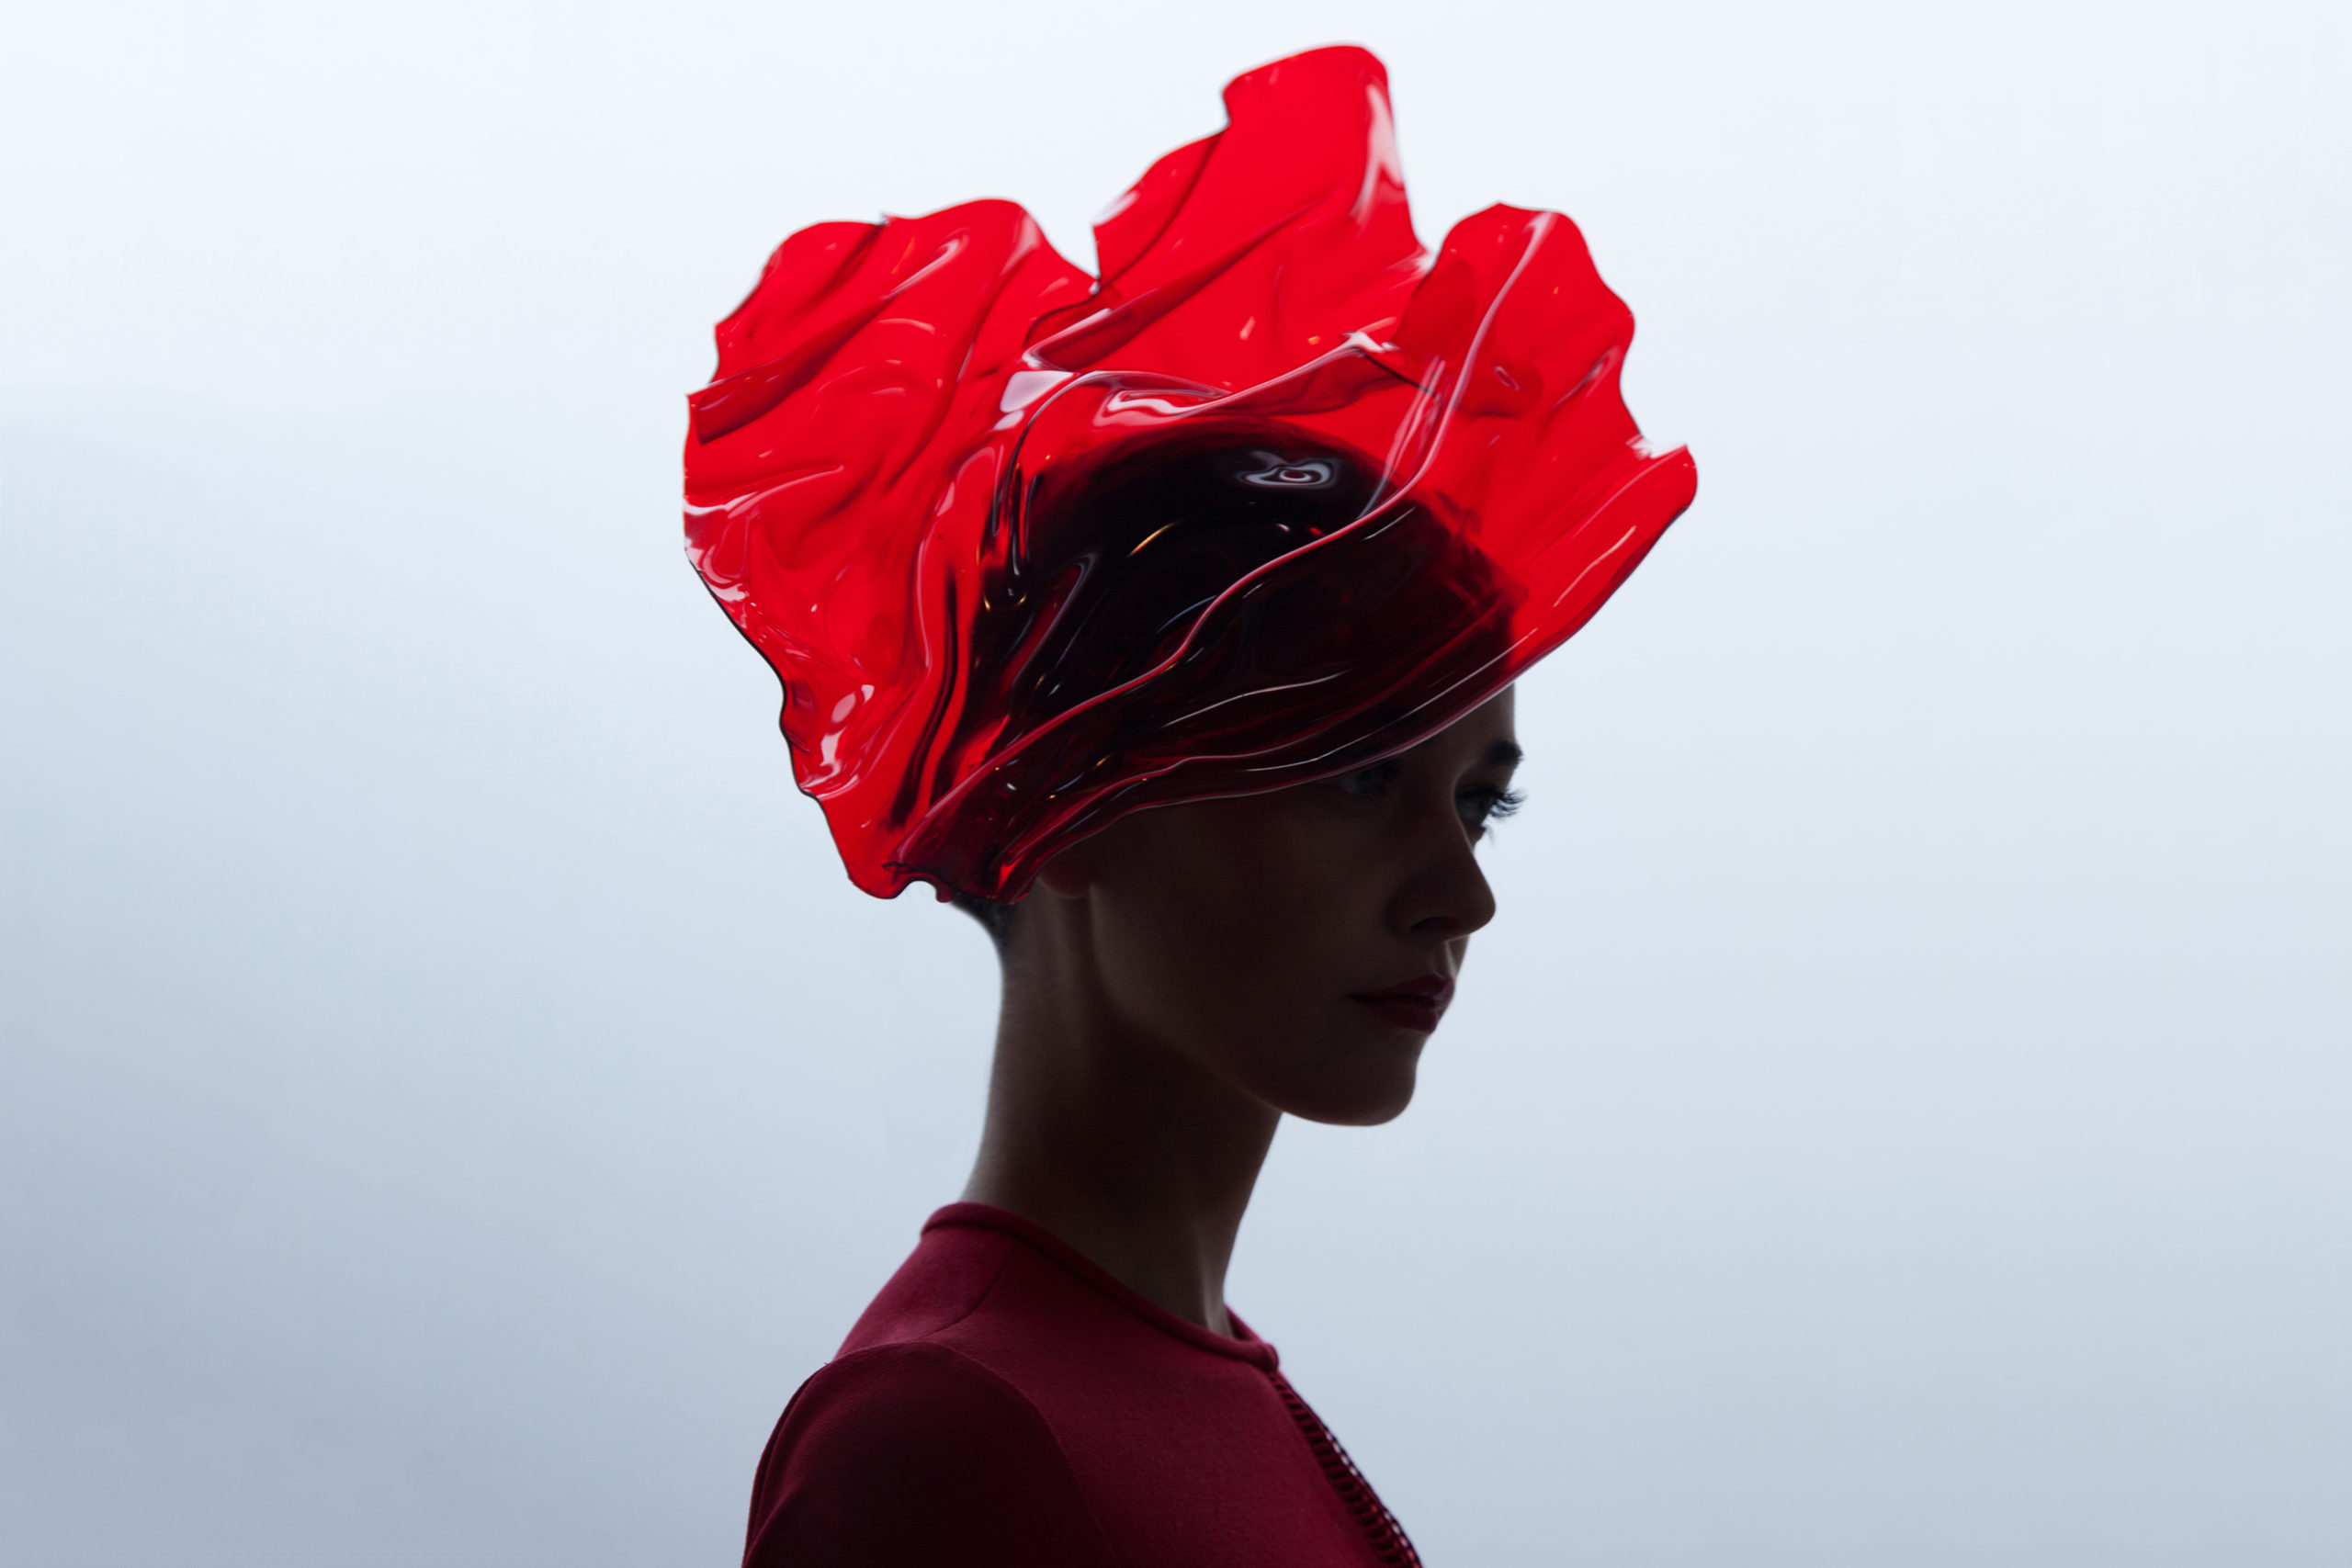 https://www.fashionandlacemuseum.brussels/wp-content/uploads/2020/09/Maison-Fabienne-Delvigne-Hat-Red-Innovation-Red-Plexi-2-scaled.jpg